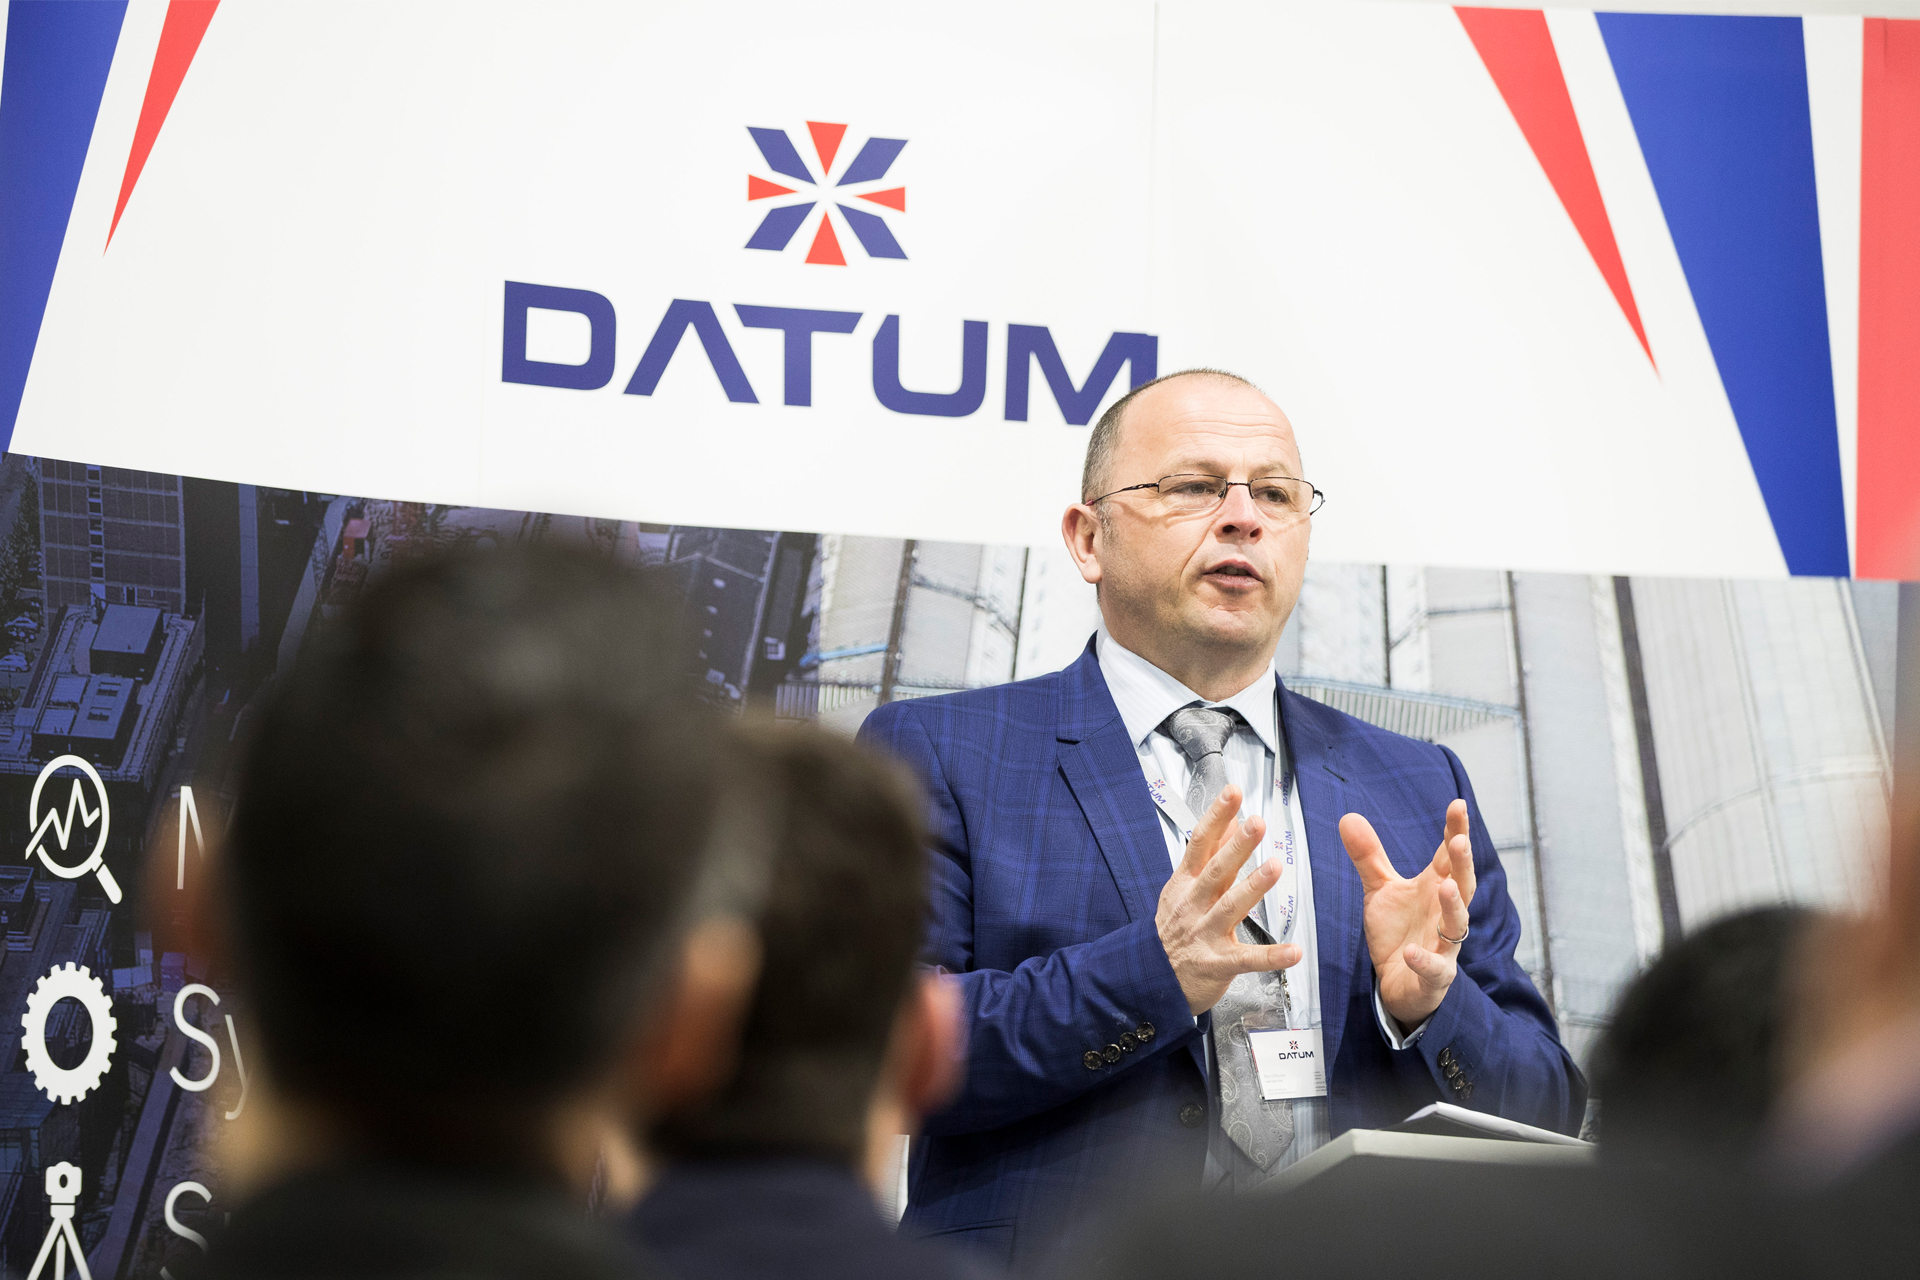 The Datum Group